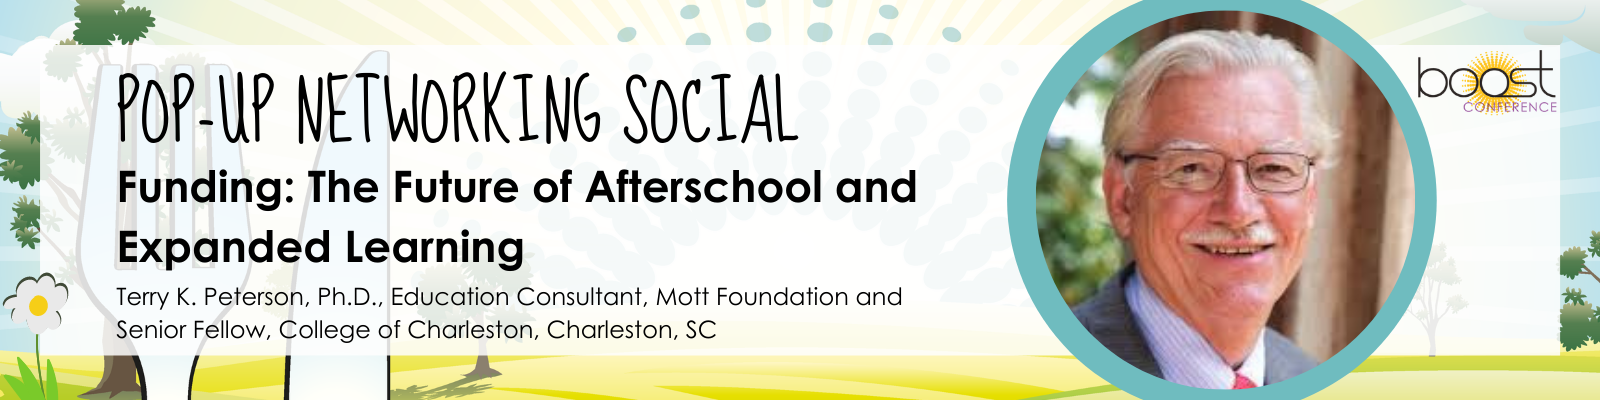 Funding: The Future of Afterschool and Expanded Learning Moderator: Terry K. Peterson, Ph.D., Education Consultant, Mott Foundation and Senior Fellow, College of Charleston, Charleston, SC